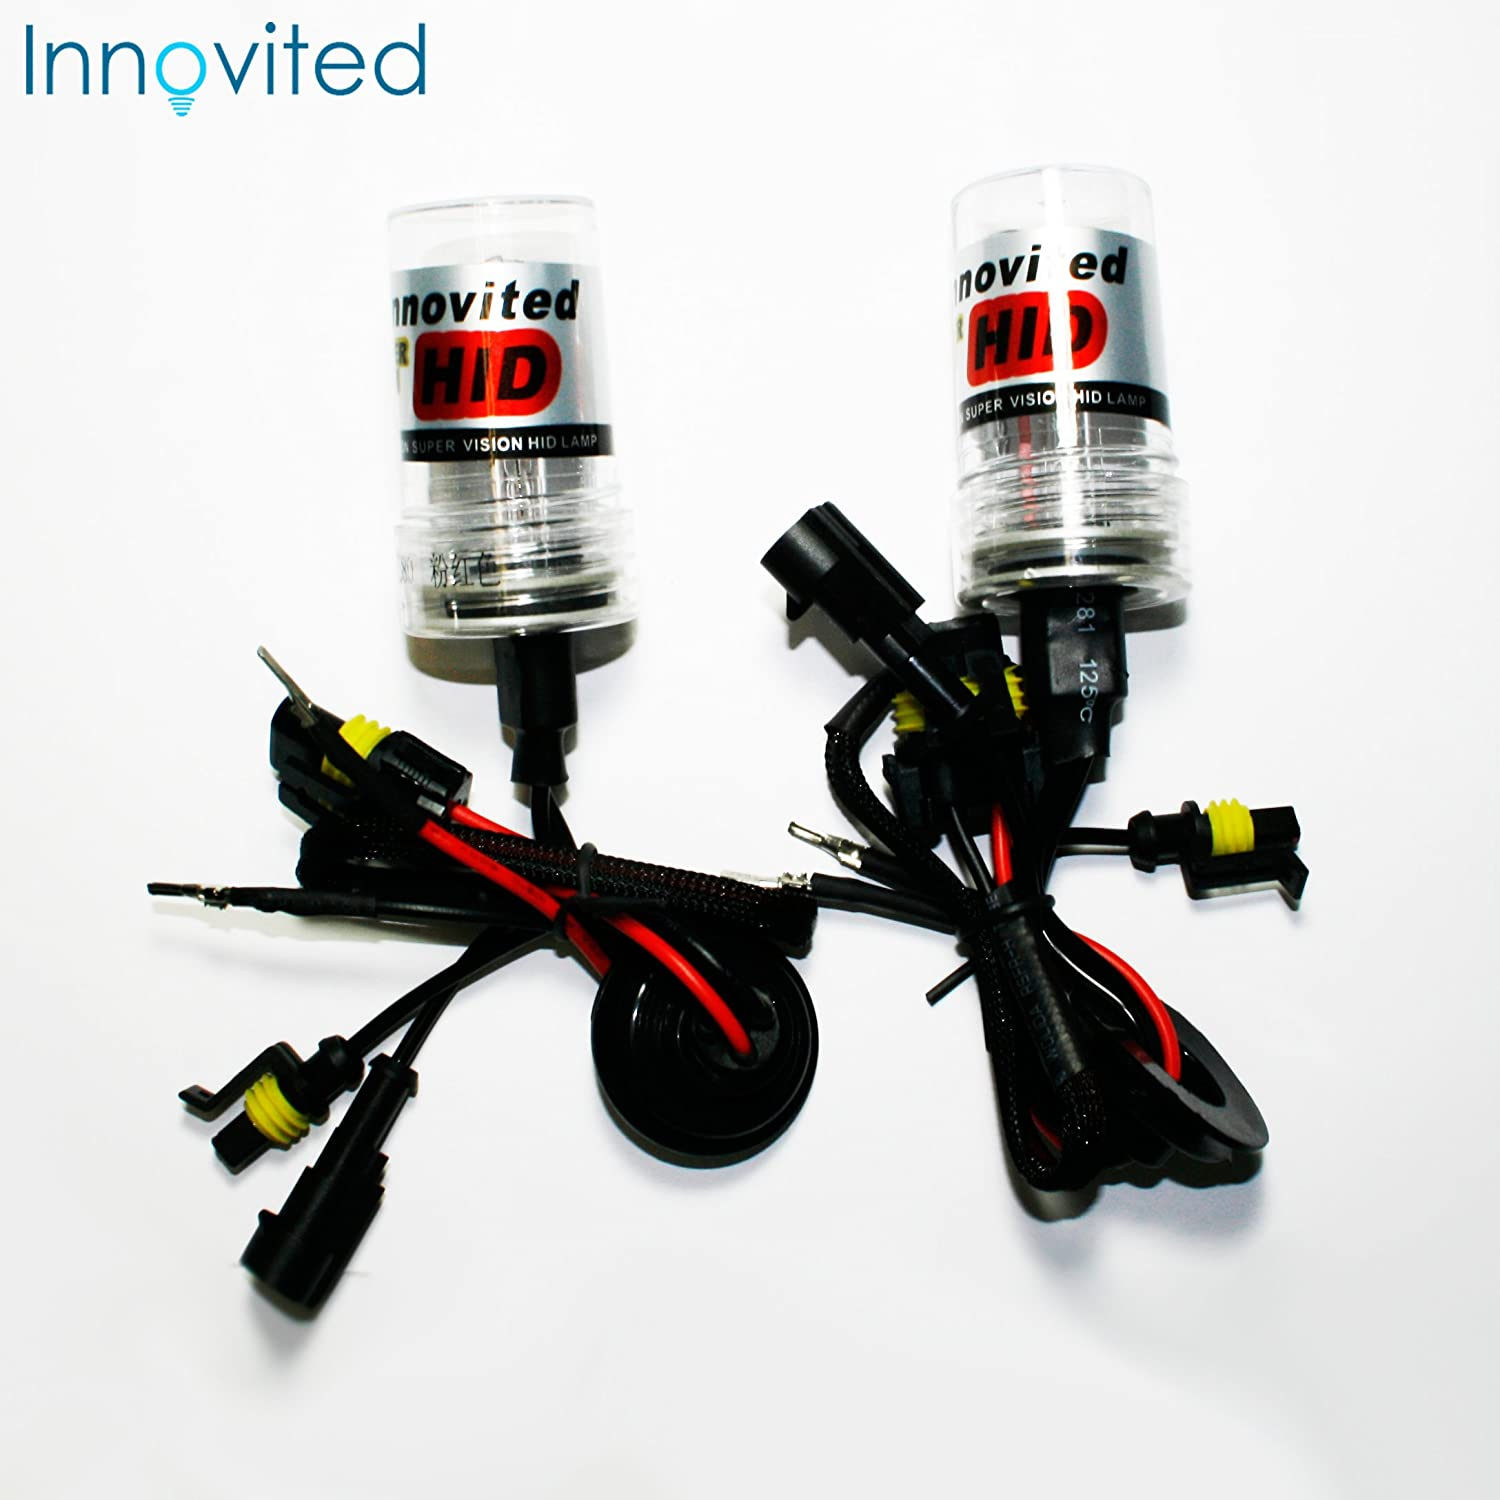 Innovited HID Xenon Replacement Bulbs Lamp H4-1 9003 8000K (Low beam Only)